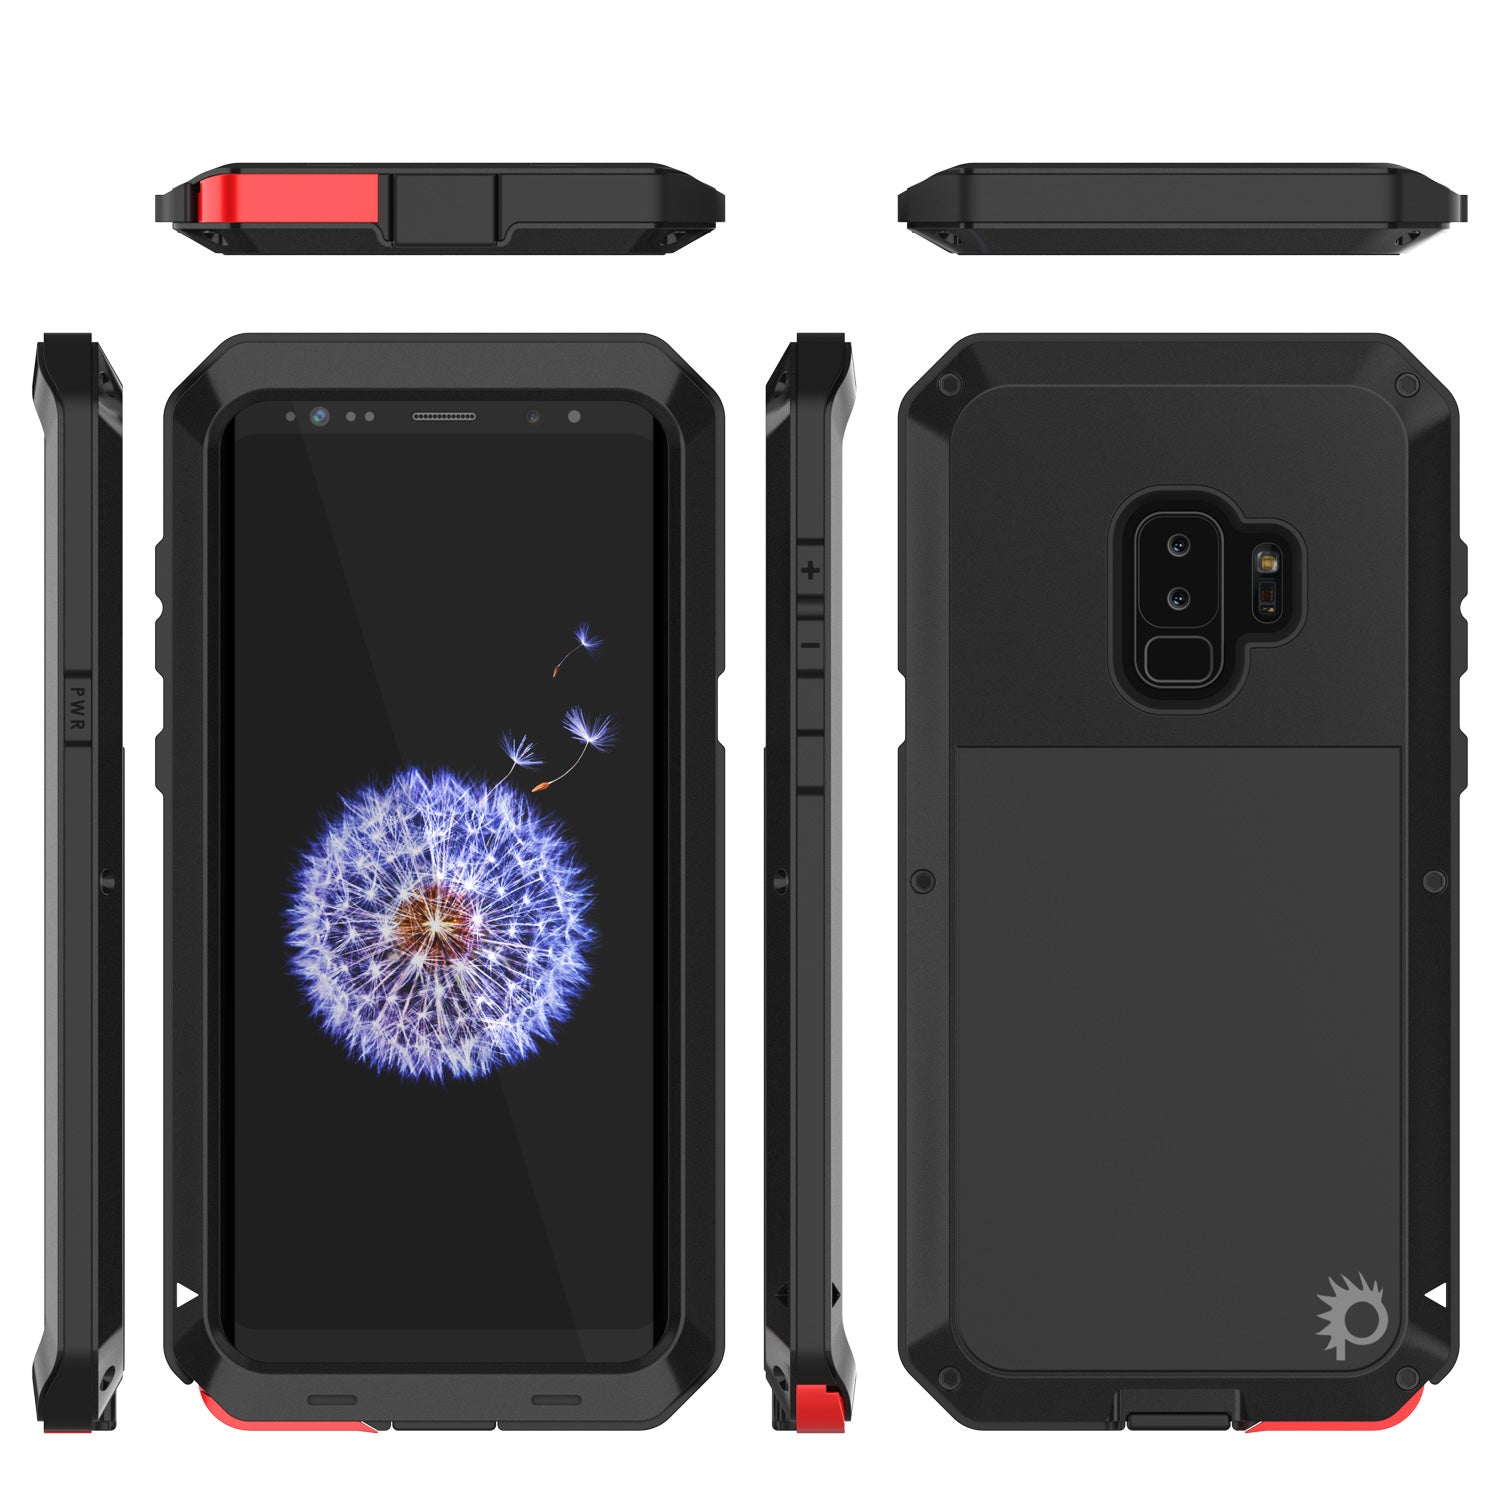 Galaxy S9 Plus Metal Case, Heavy Duty Military Grade Rugged Armor Cover [Black]